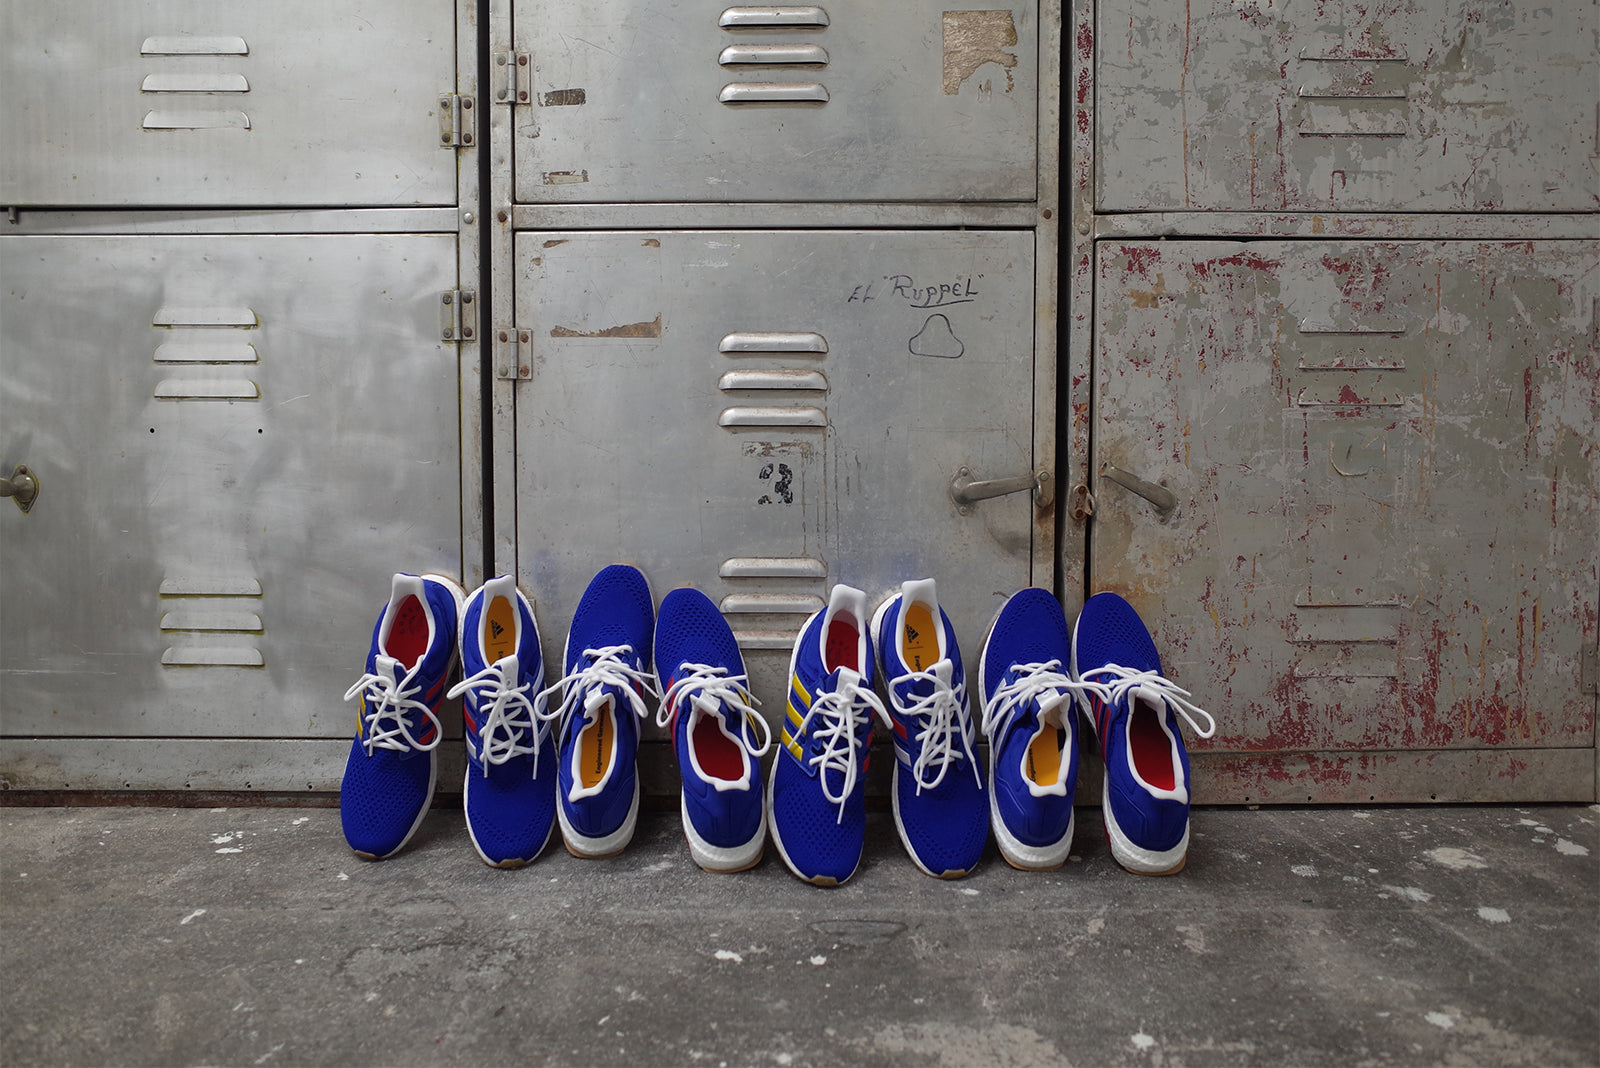 caff4d60f6203 adidas Consortium x Engineered Garments – Hanon